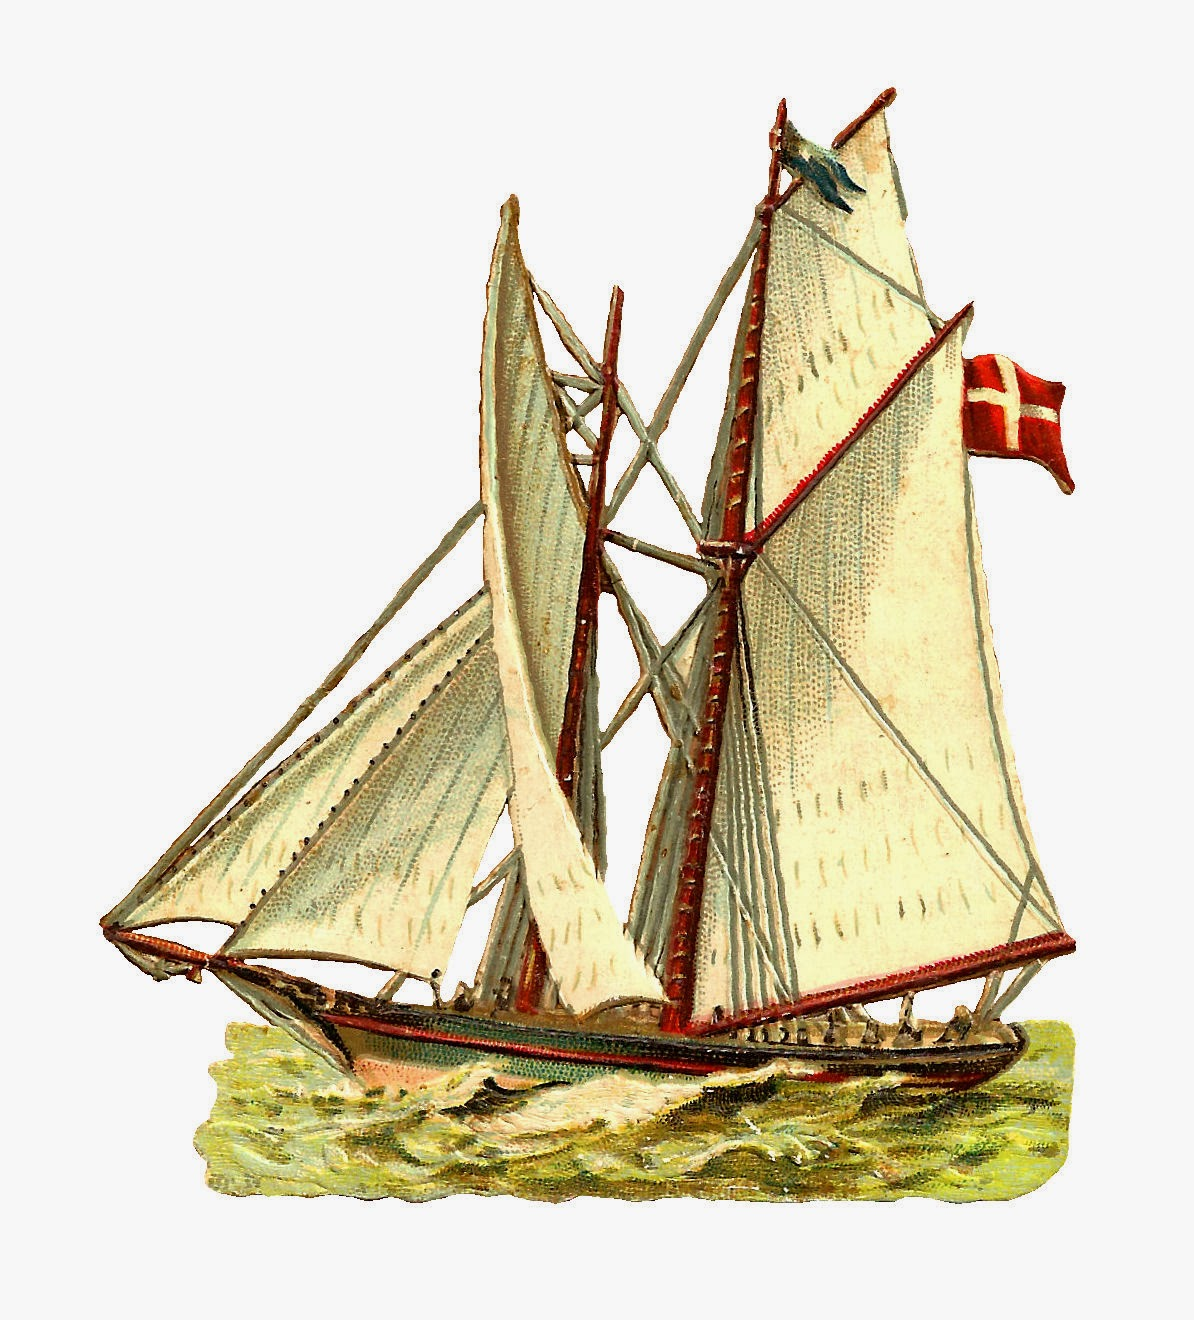 Antique Images Free Ship Graphic Antique Clip Art Of Sailing Ship With Denmark Flag